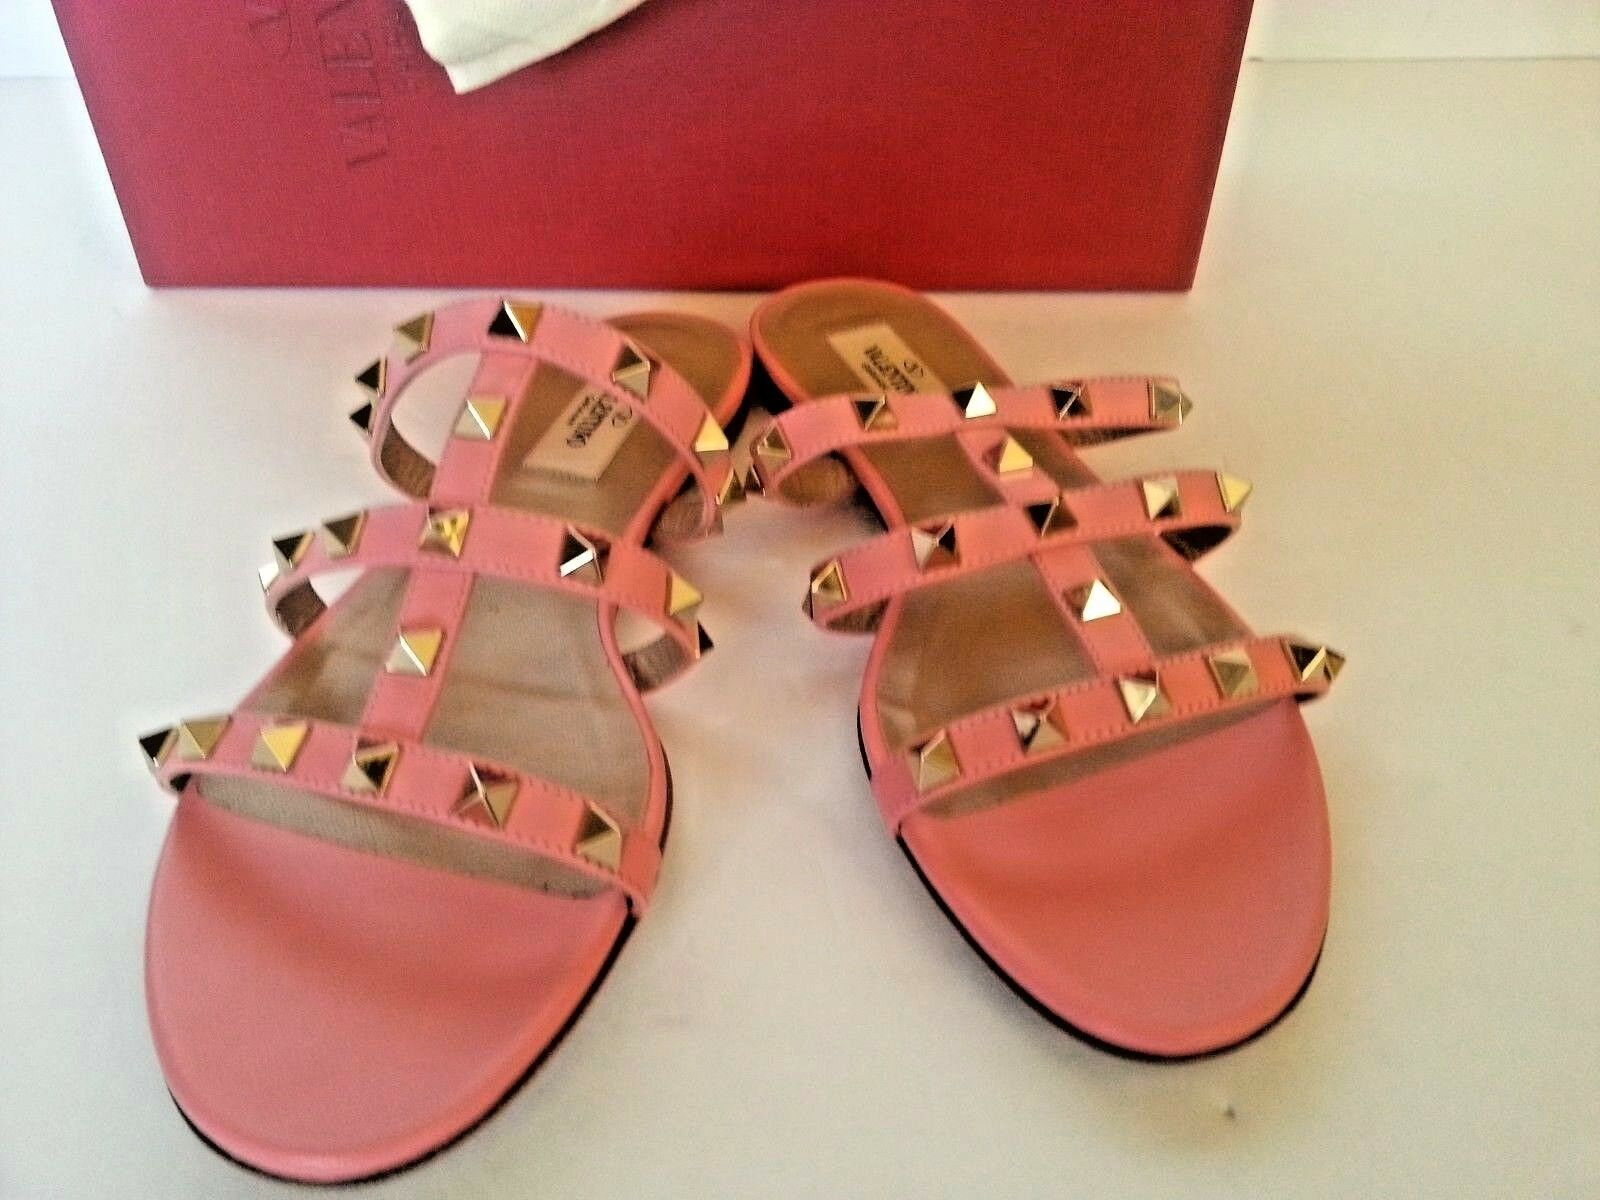 NEW Valentino Garavani Rockstud  Caged Flat Sandals Slip On Salmon rose chaussures 38